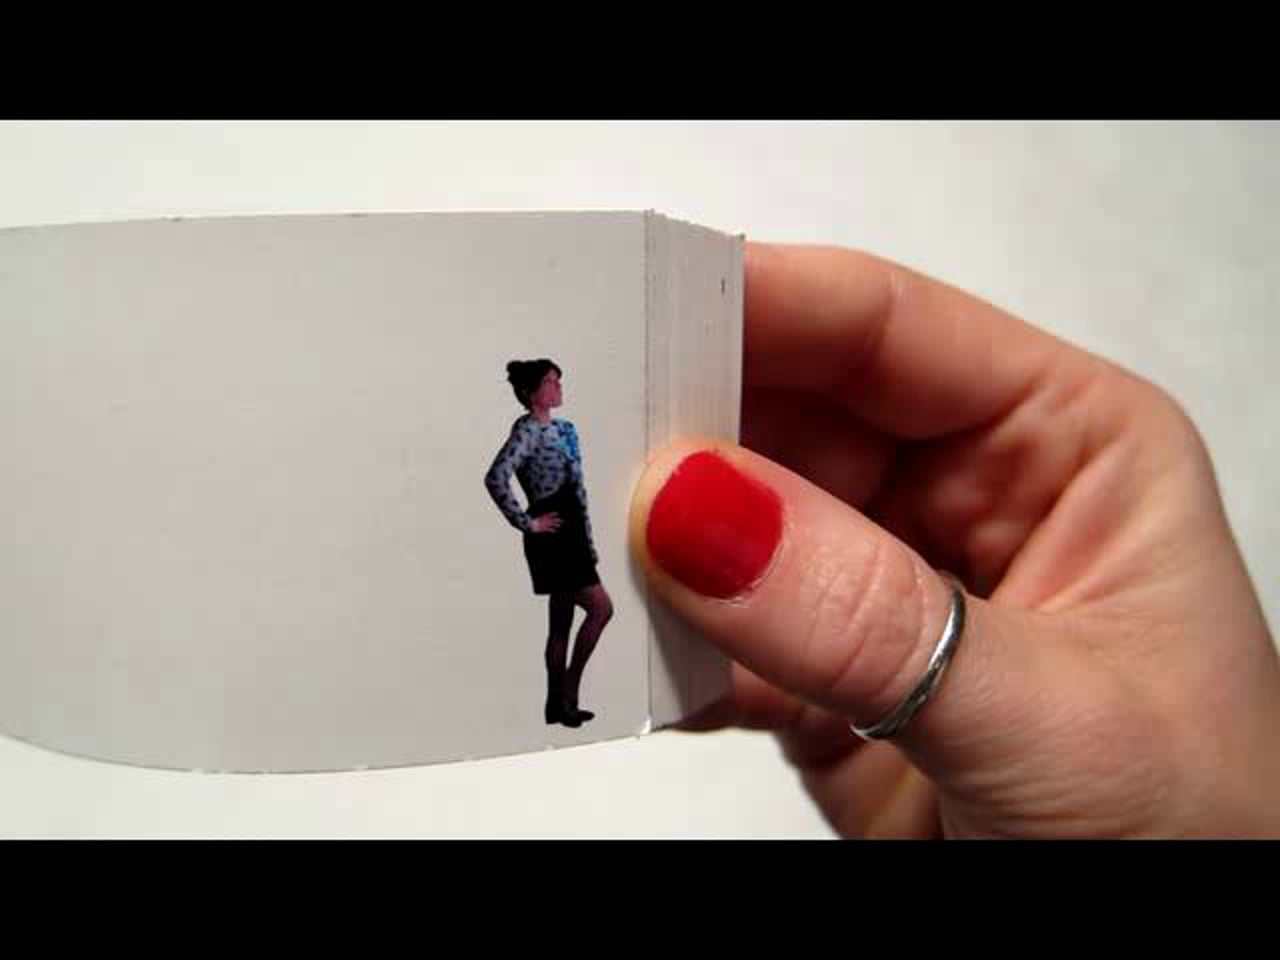 The 'sweetest' Proposal flip book